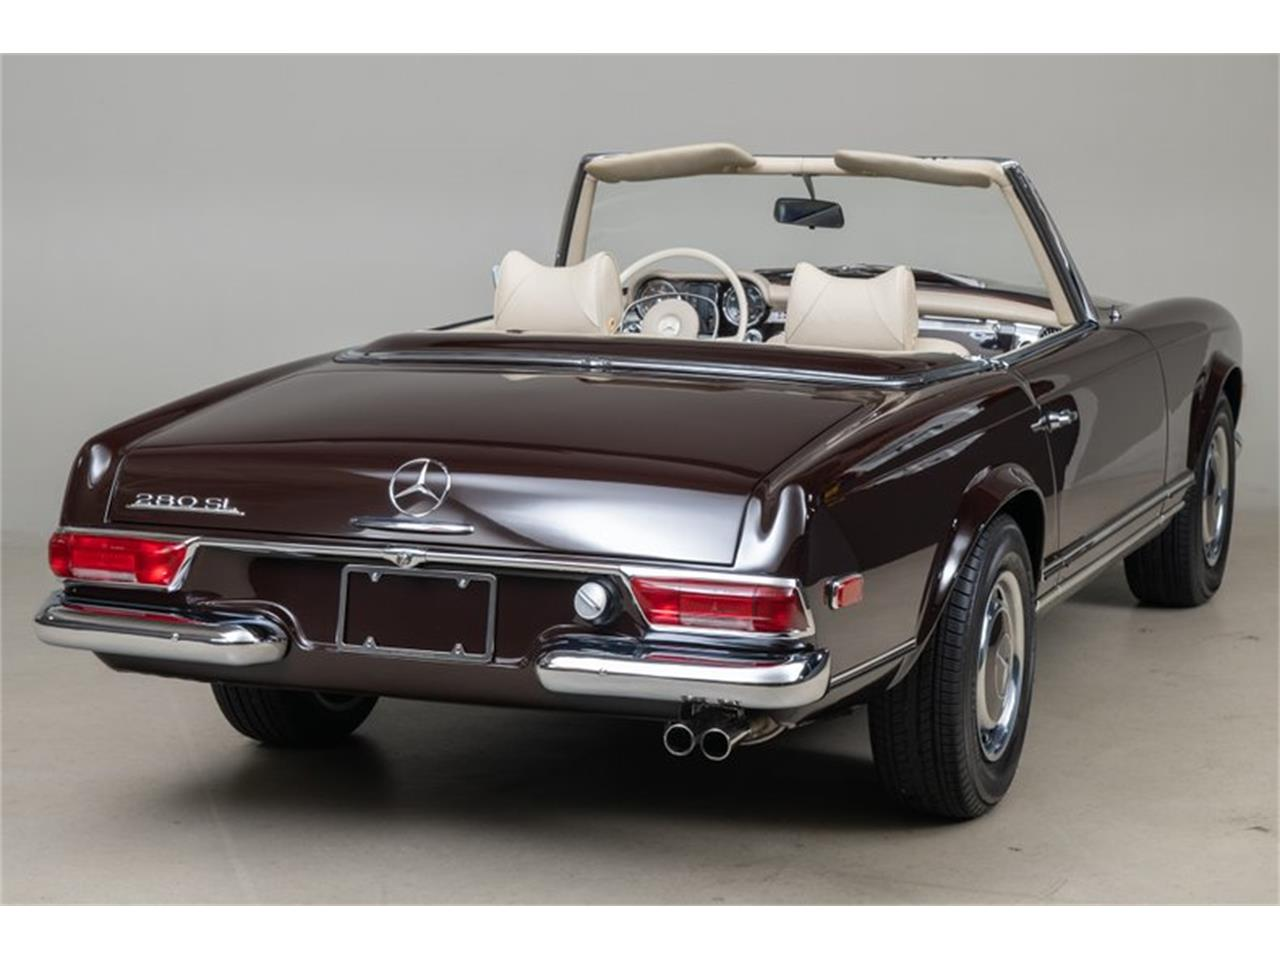 Large Picture of Classic '69 Mercedes-Benz 280SL located in California Auction Vehicle Offered by Canepa - QALE